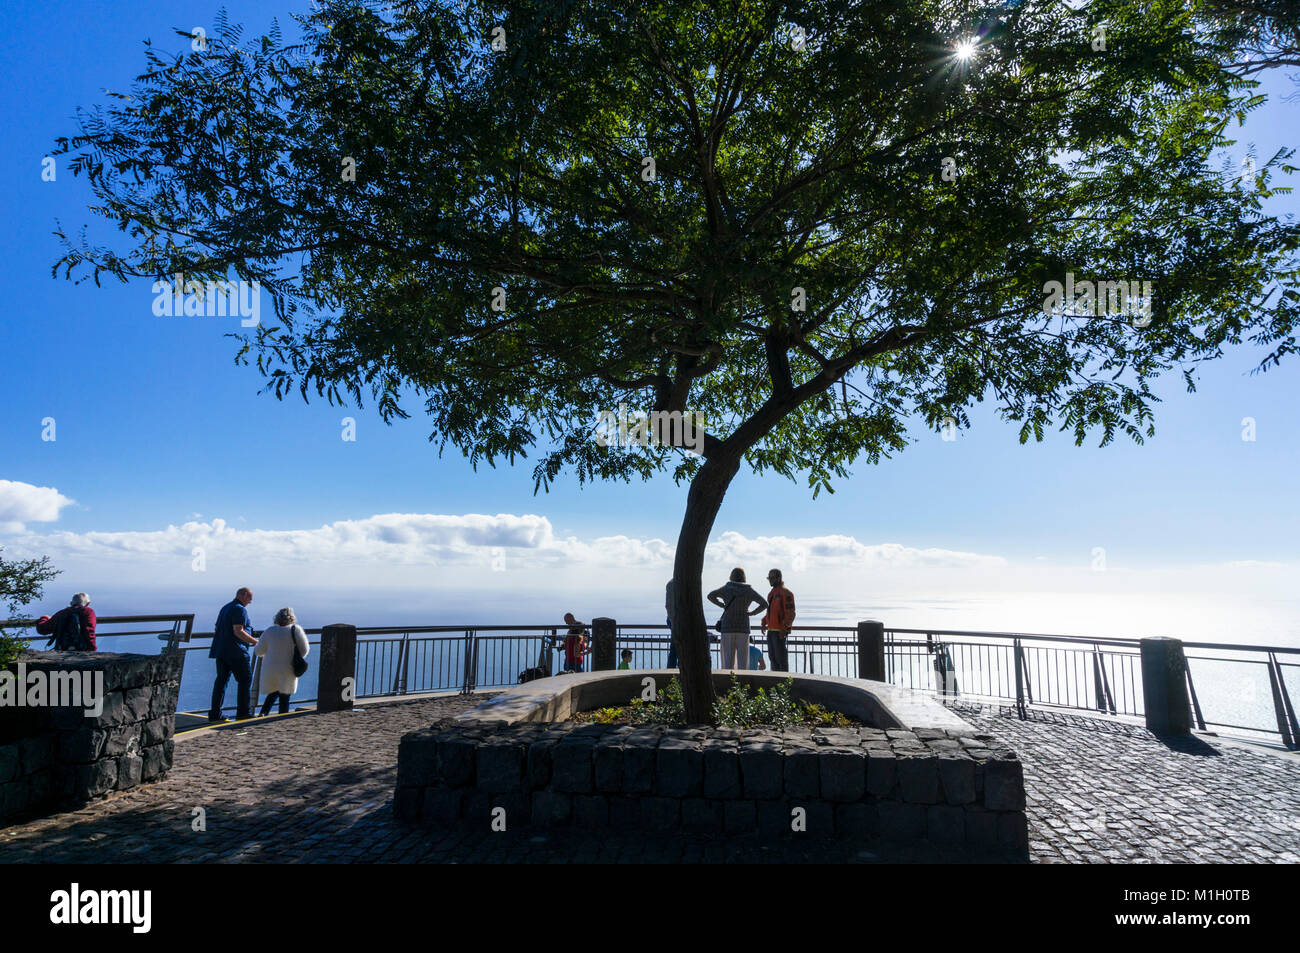 Cabo girao madeira portugal madeira Tourists on glass viewing platform at Cabo Girao a high sea cliff south coast - Stock Image